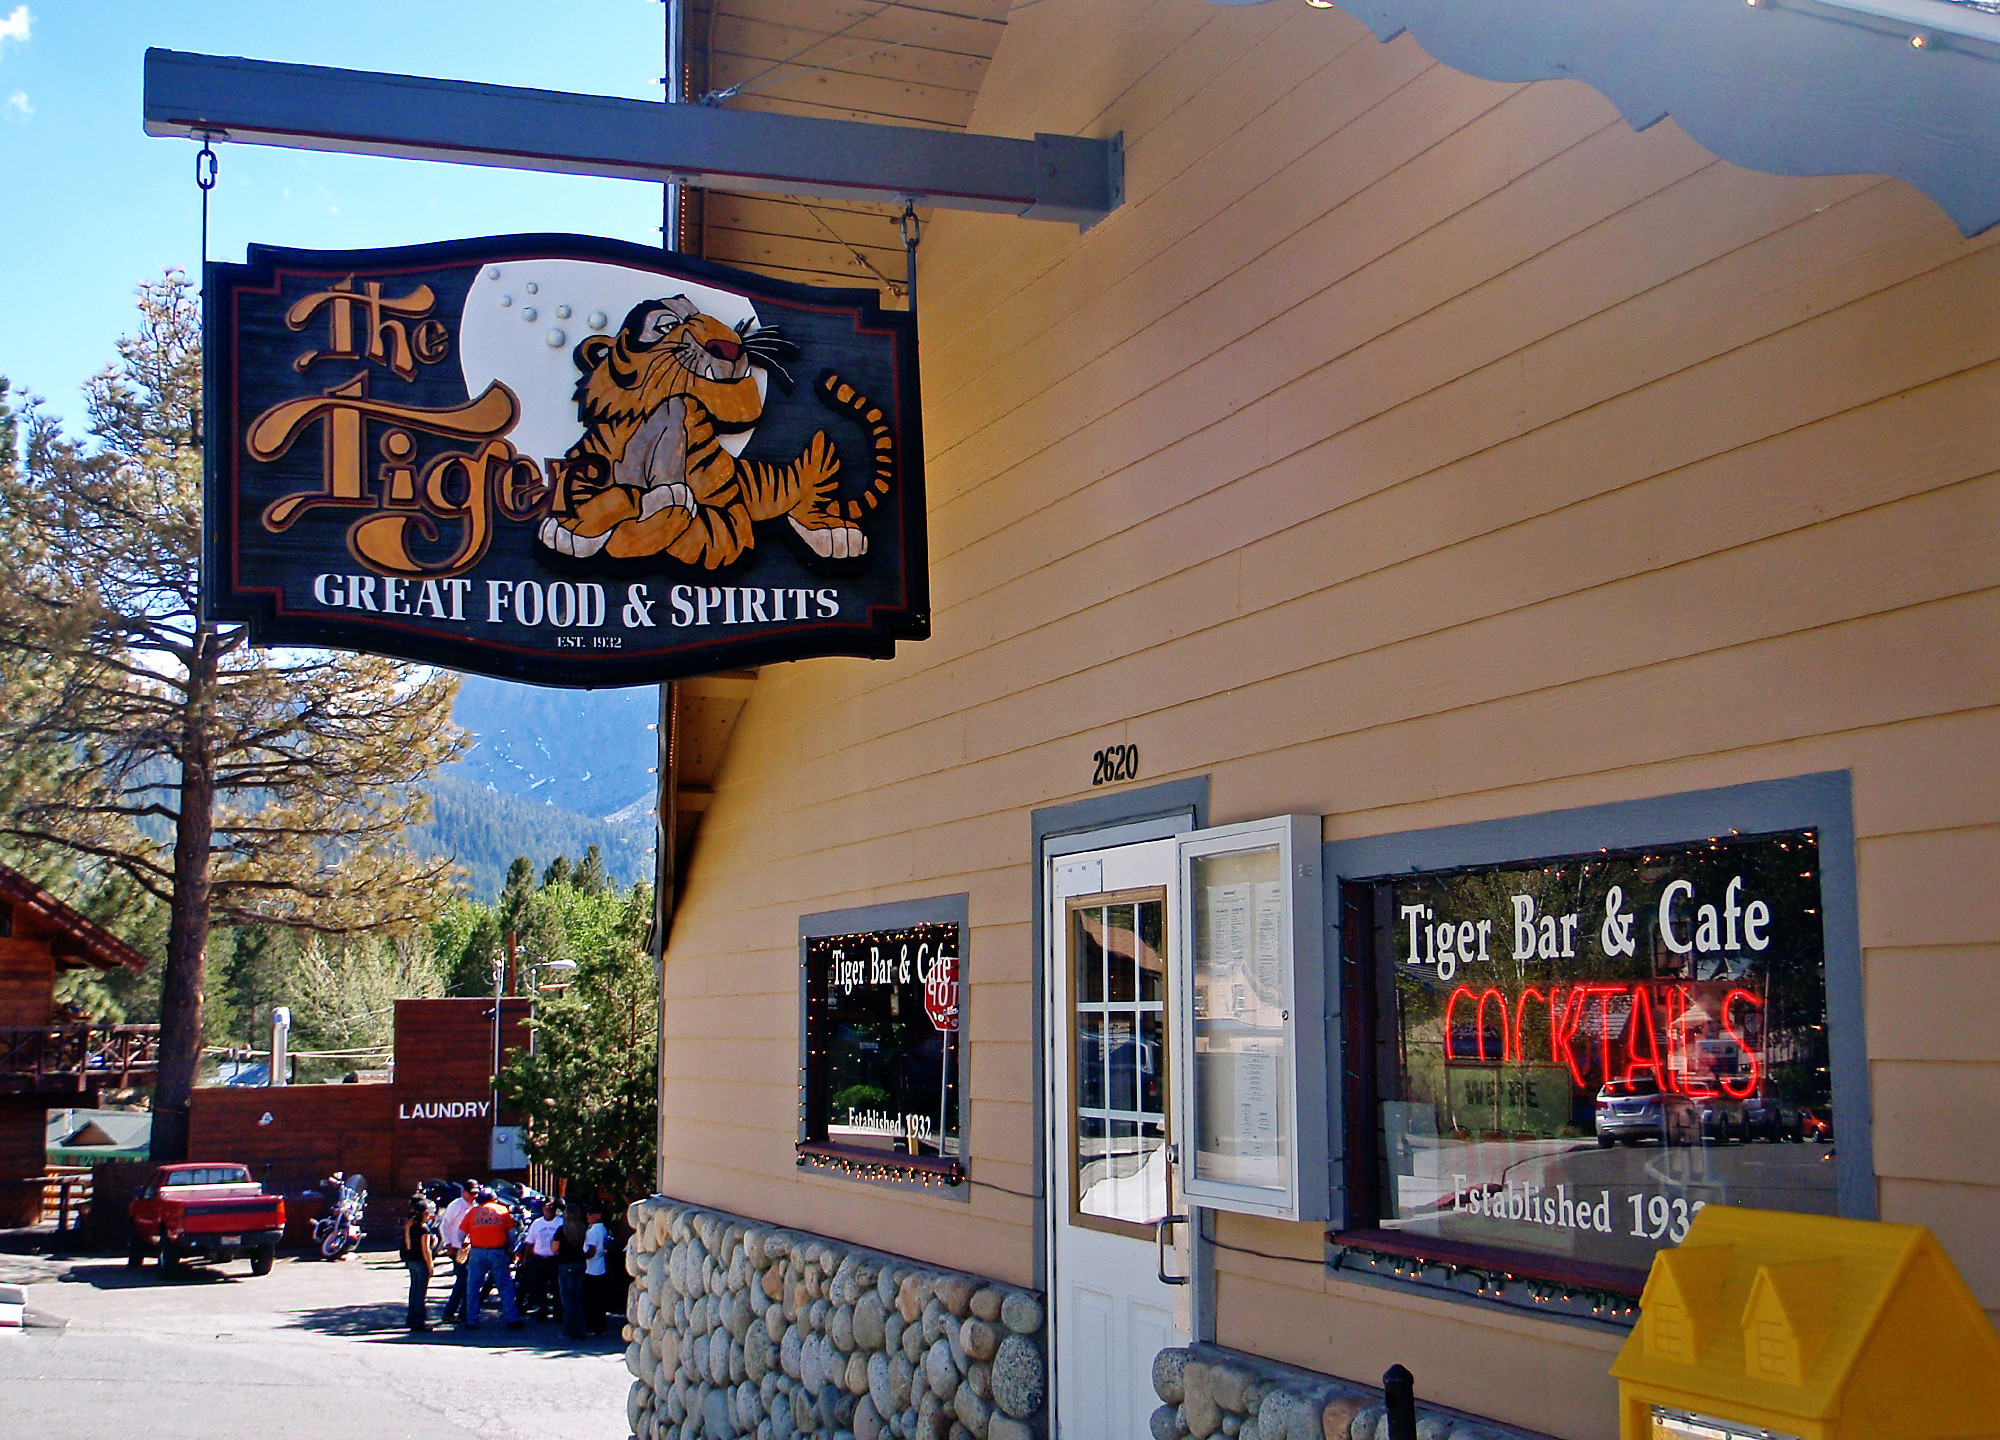 Weekend Escapes: June Lake, Calif. - The Tiger Bar & Cafe